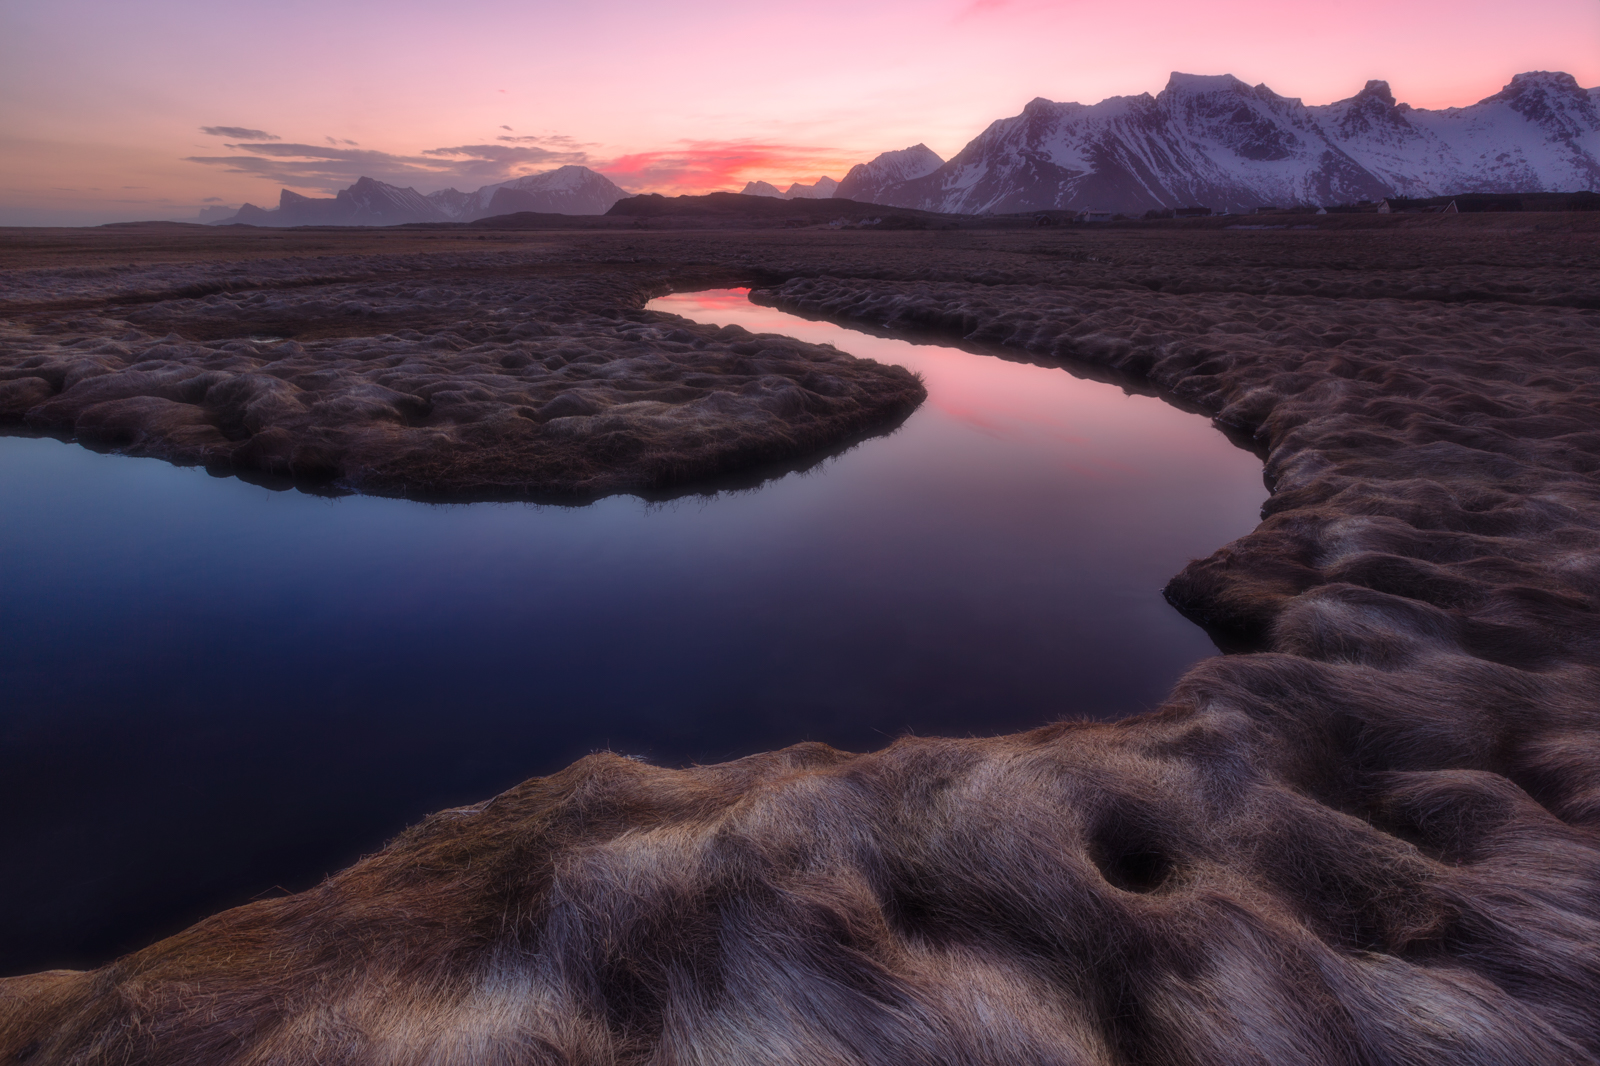 Photo of a blue river running through a field of grass illuminated by pink light at dawn. Snow capped mountain peaks lay on the horizon, taken in Lofoten, Norway